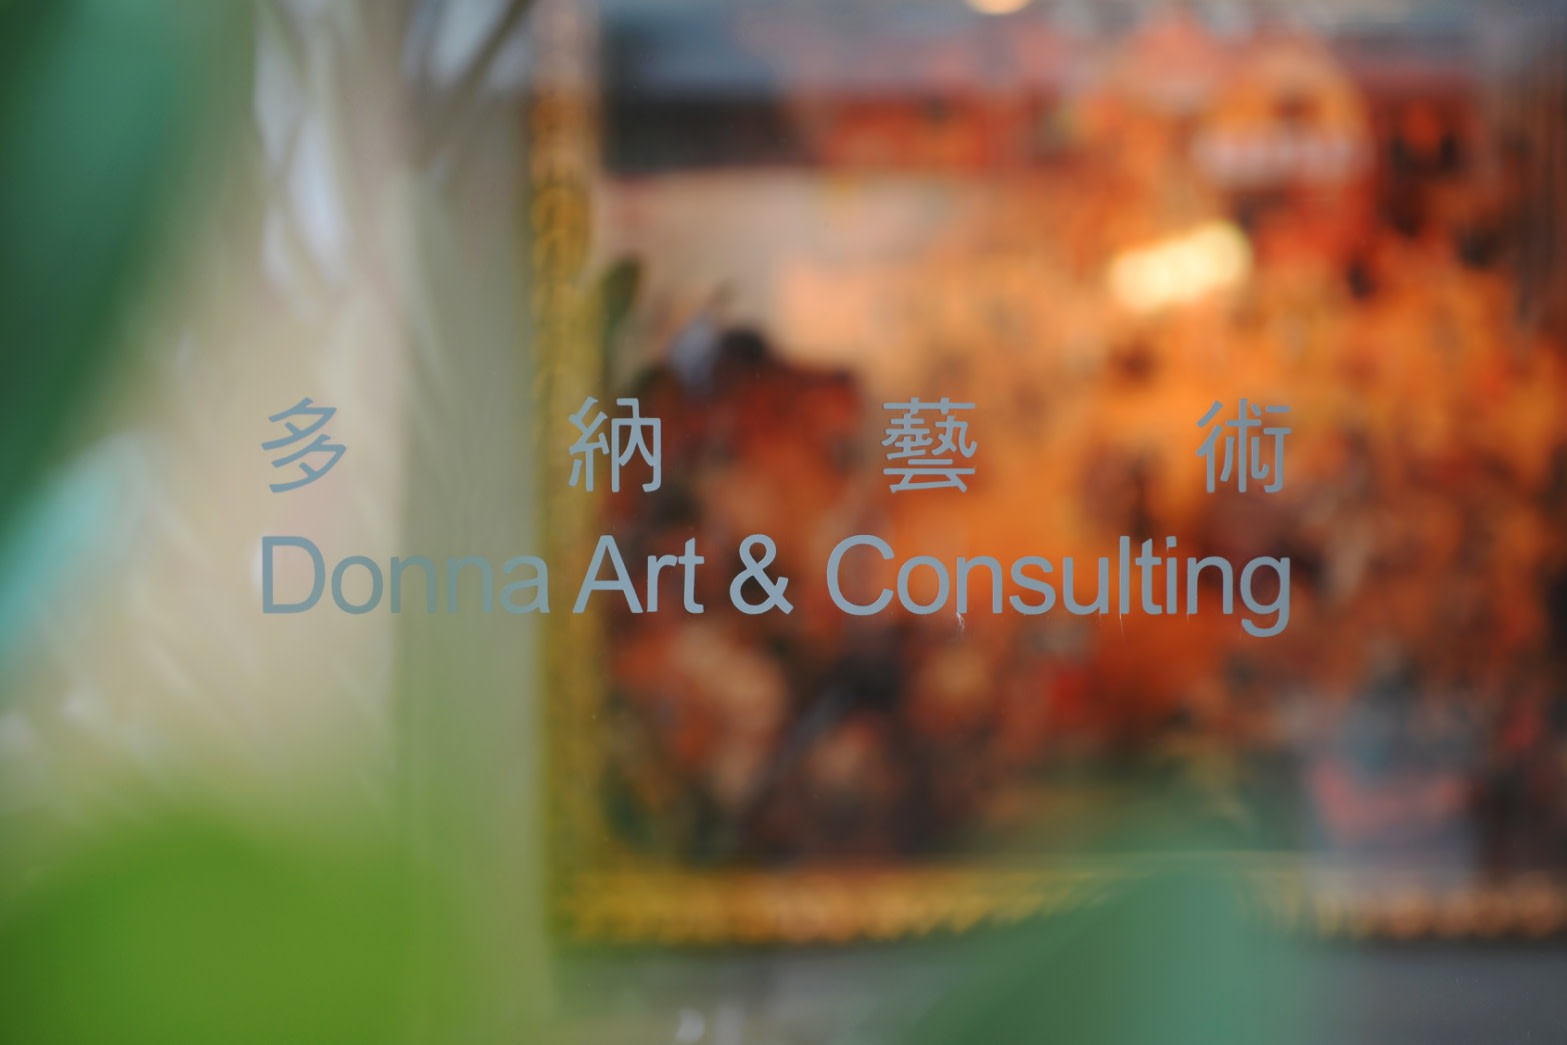 About 多納藝術 Donna Art & Consulting